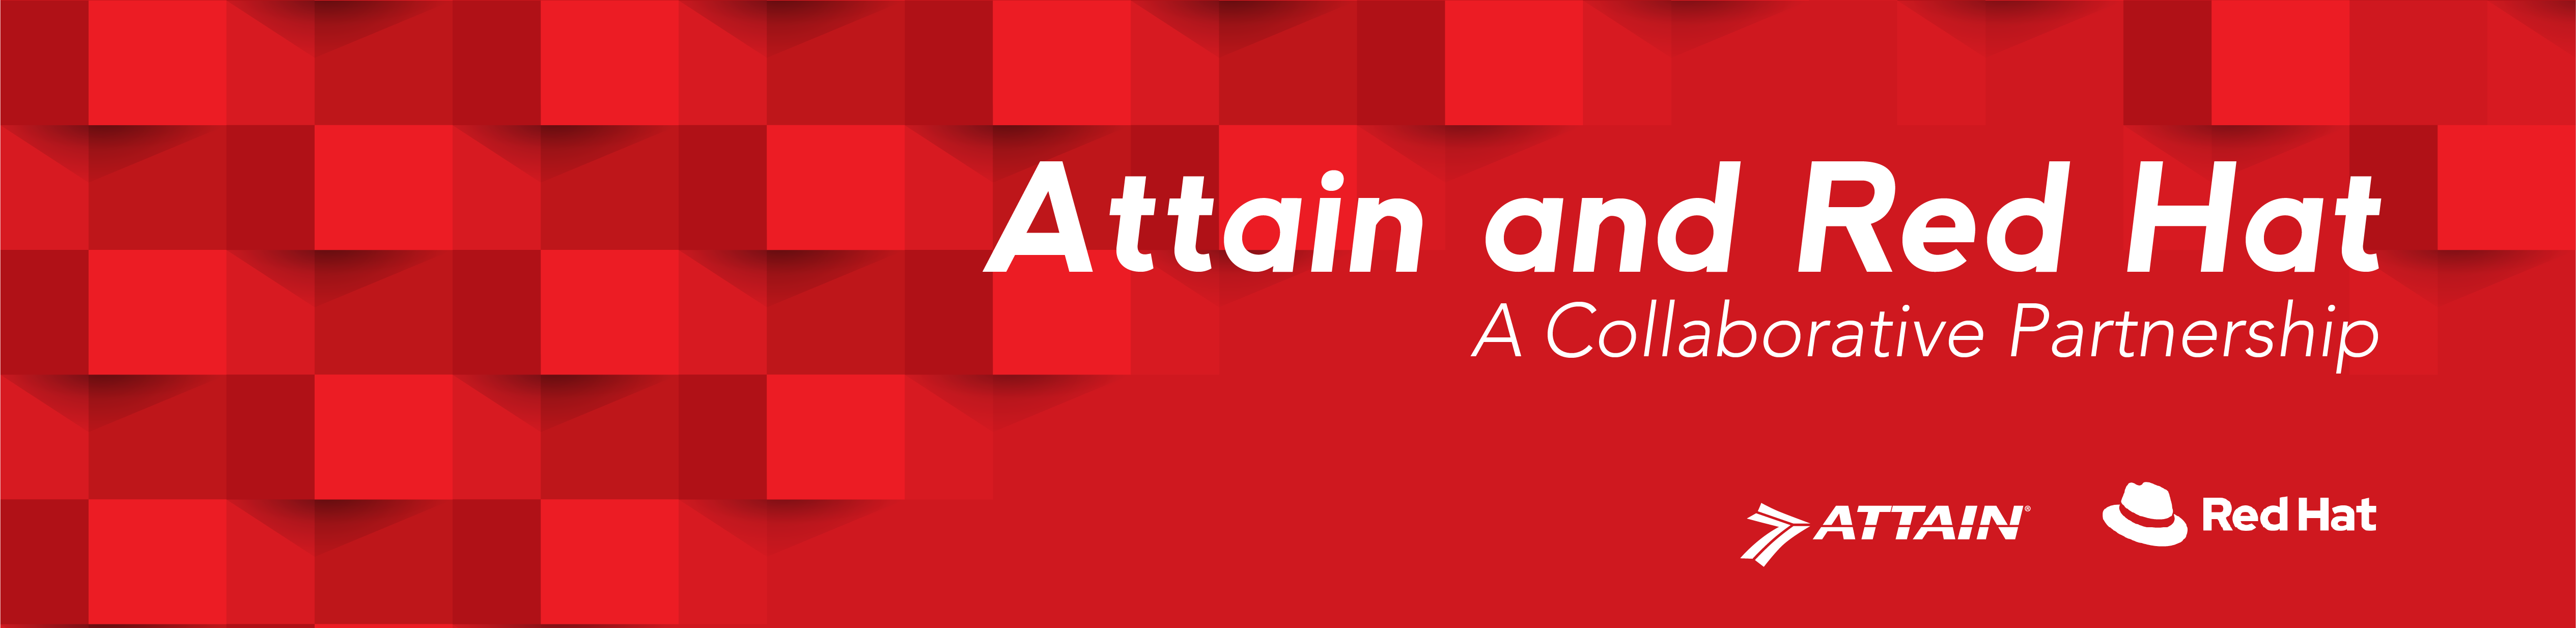 Red Hat and Attain